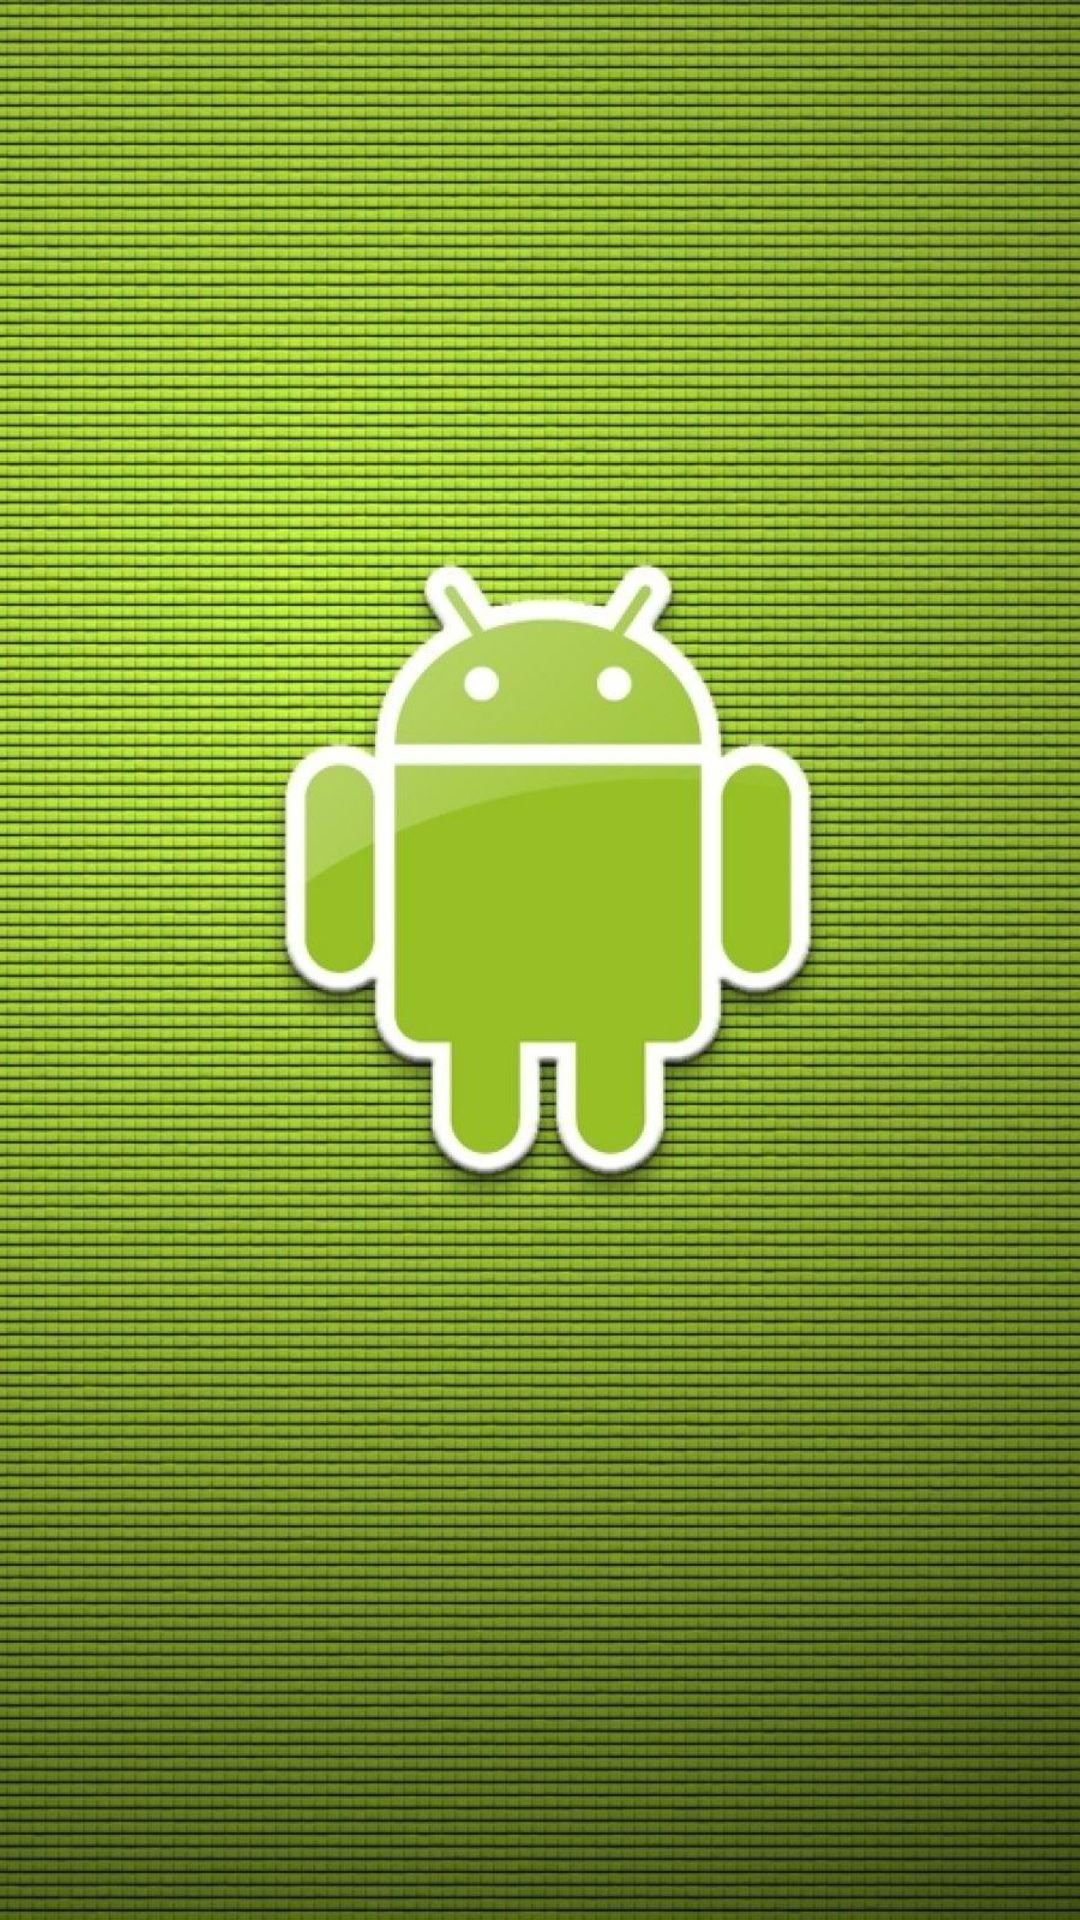 customize your galaxy with this high definition green android wallpaper from hd phone wallpapers